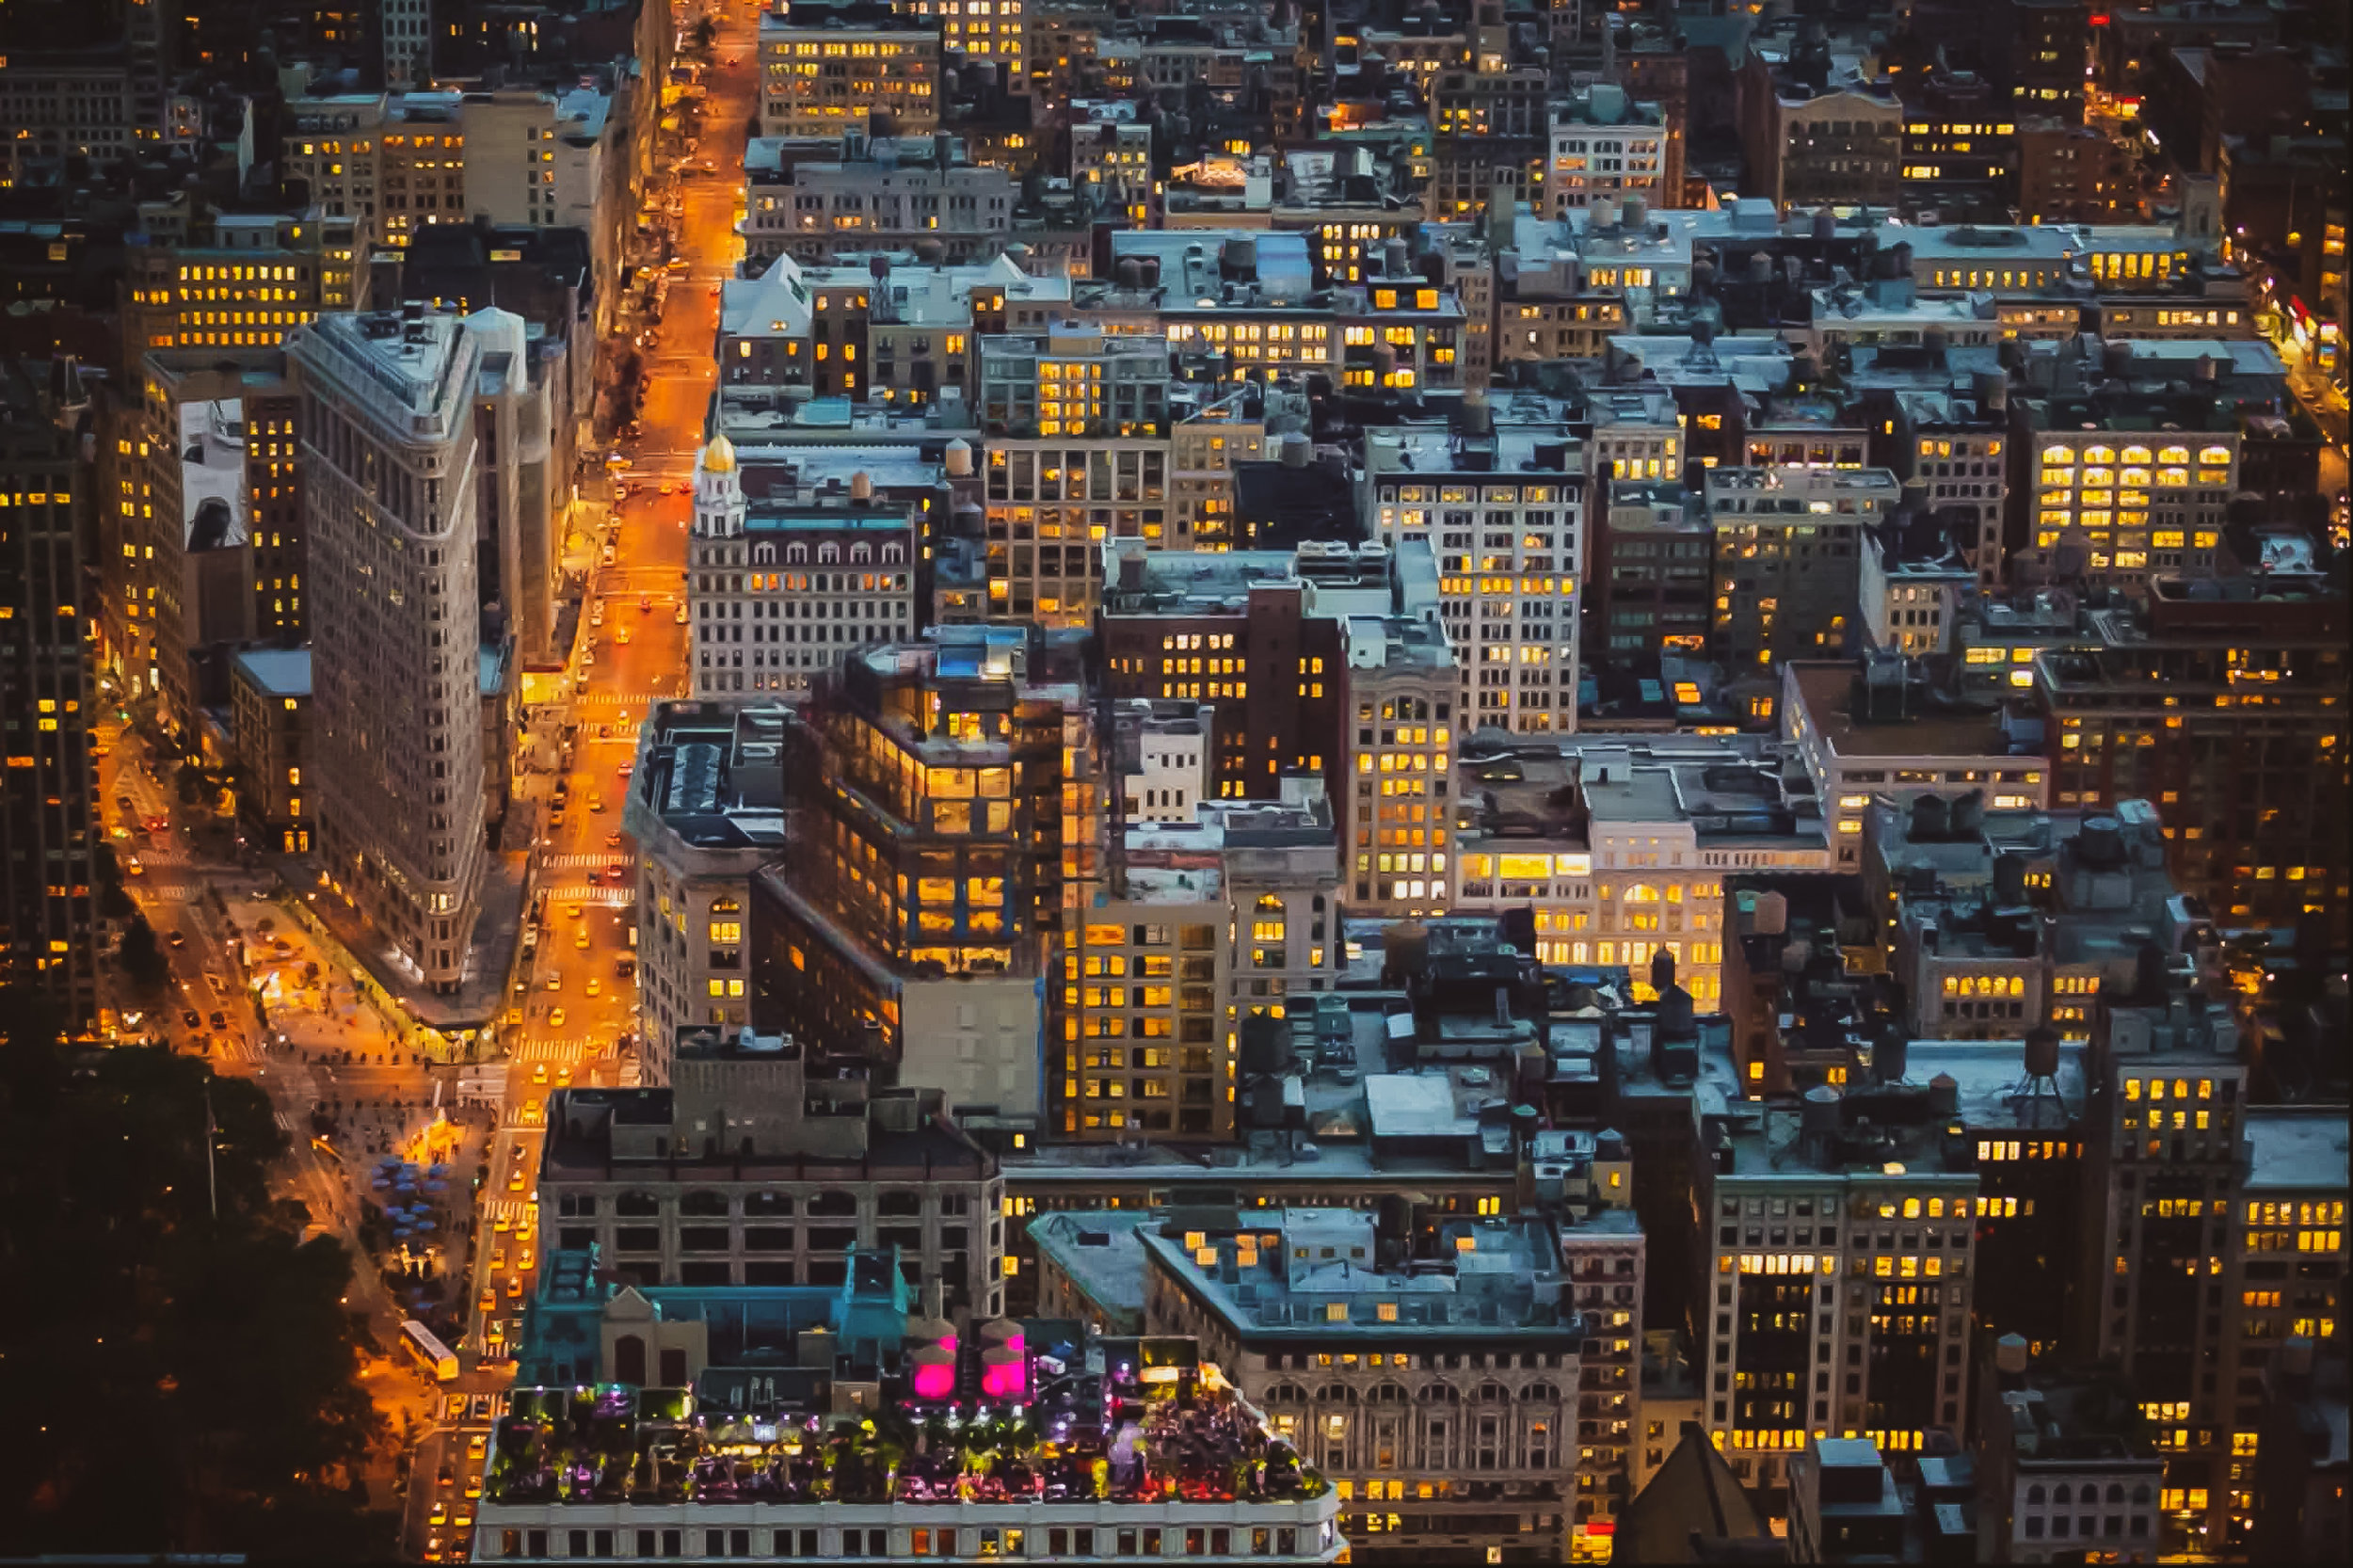 the flatiron building captured from the empire state building observation deck. Photo  @lucascompan